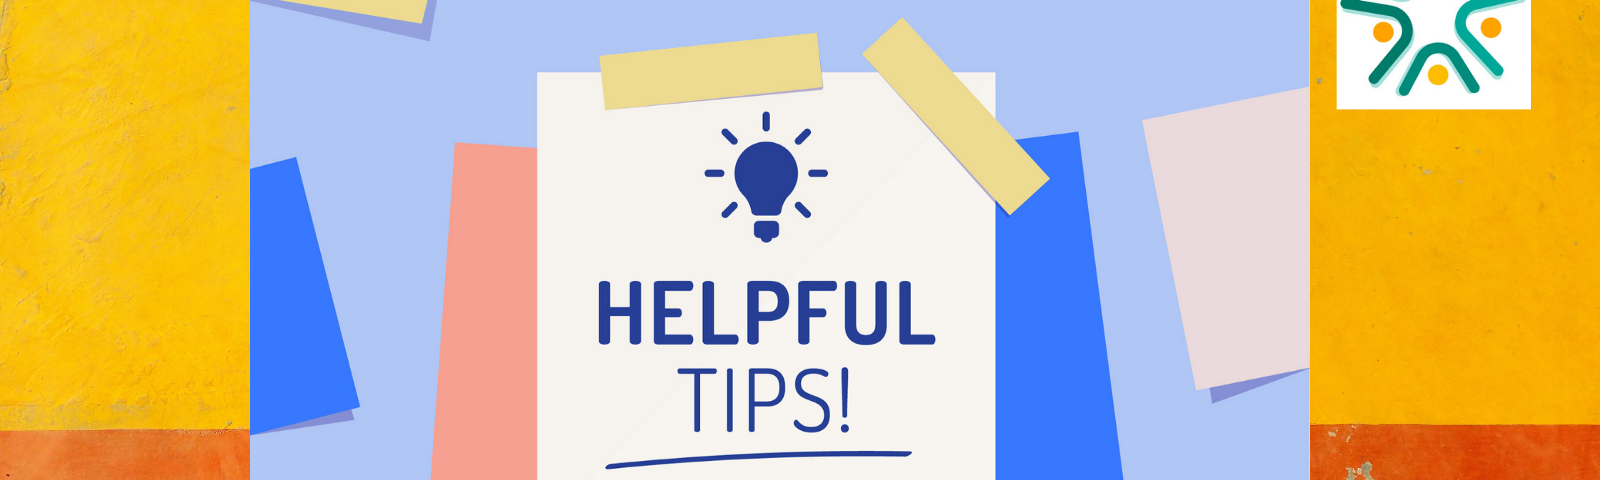 Tips to Use Online Teaching App